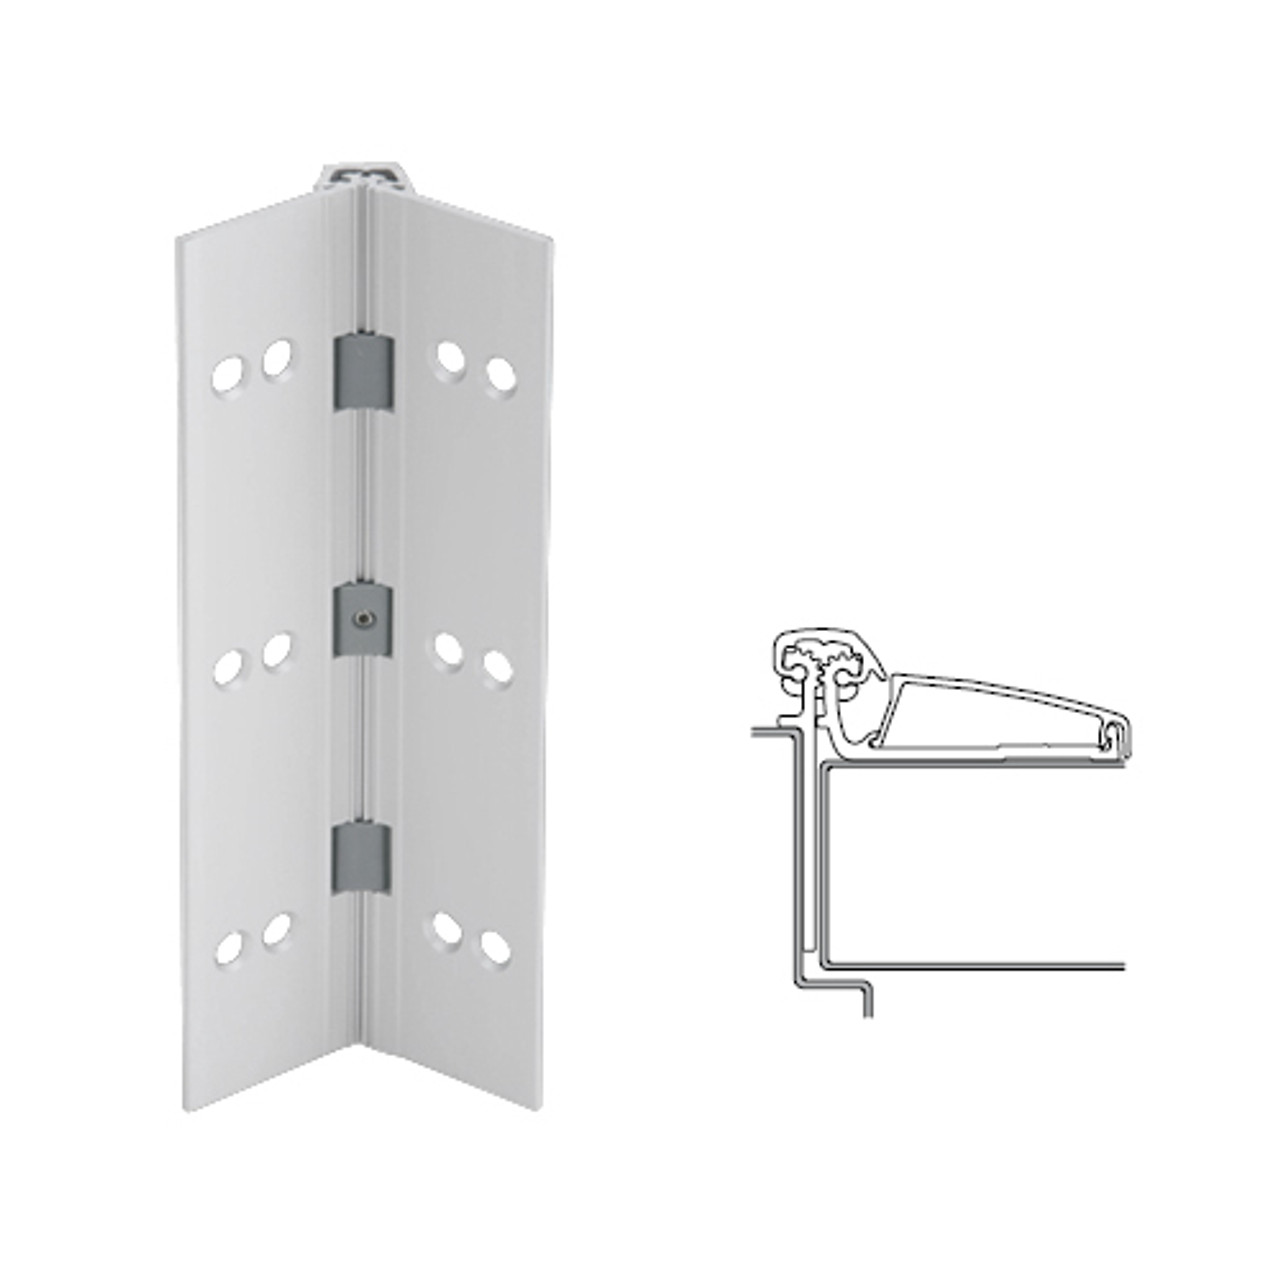 046XY-US28-95-SECWDWD IVES Adjustable Half Surface Continuous Geared Hinges with Security Screws - Hex Pin Drive in Satin Aluminum